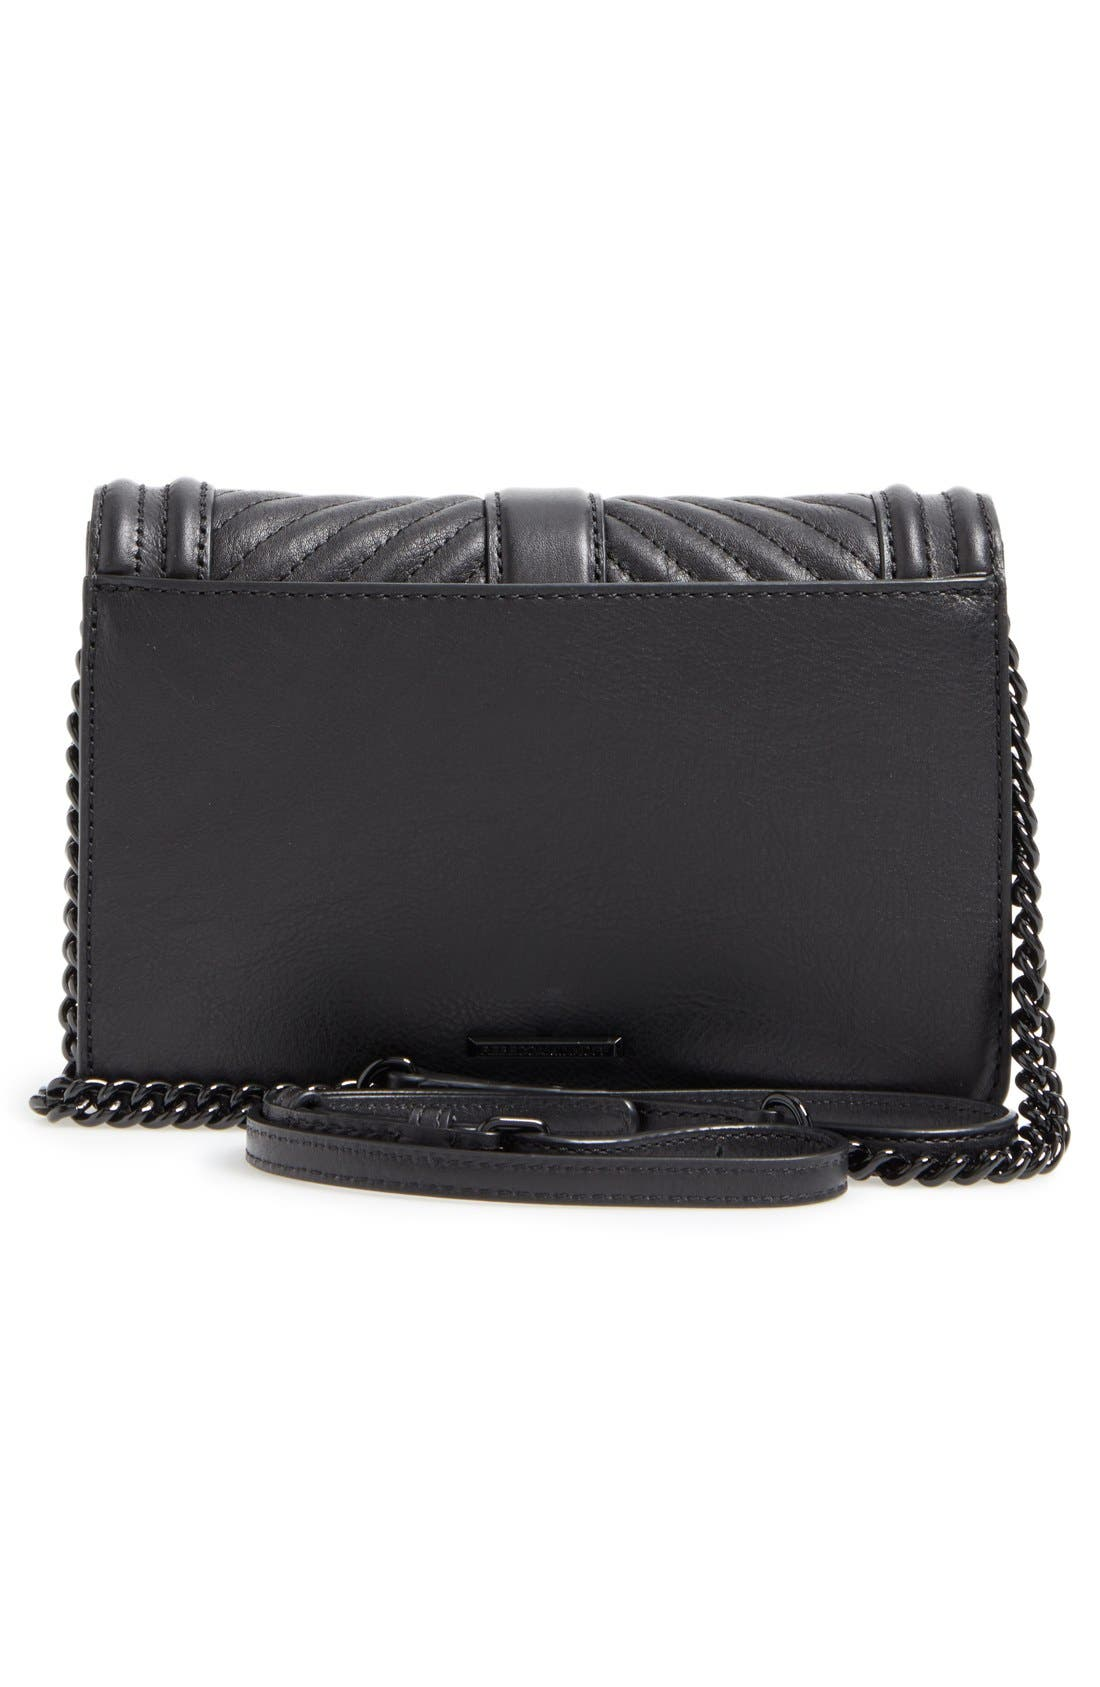 REBECCA MINKOFF, Small Love Leather Crossbody Bag, Alternate thumbnail 6, color, BLACK/ BLACK HRDWR